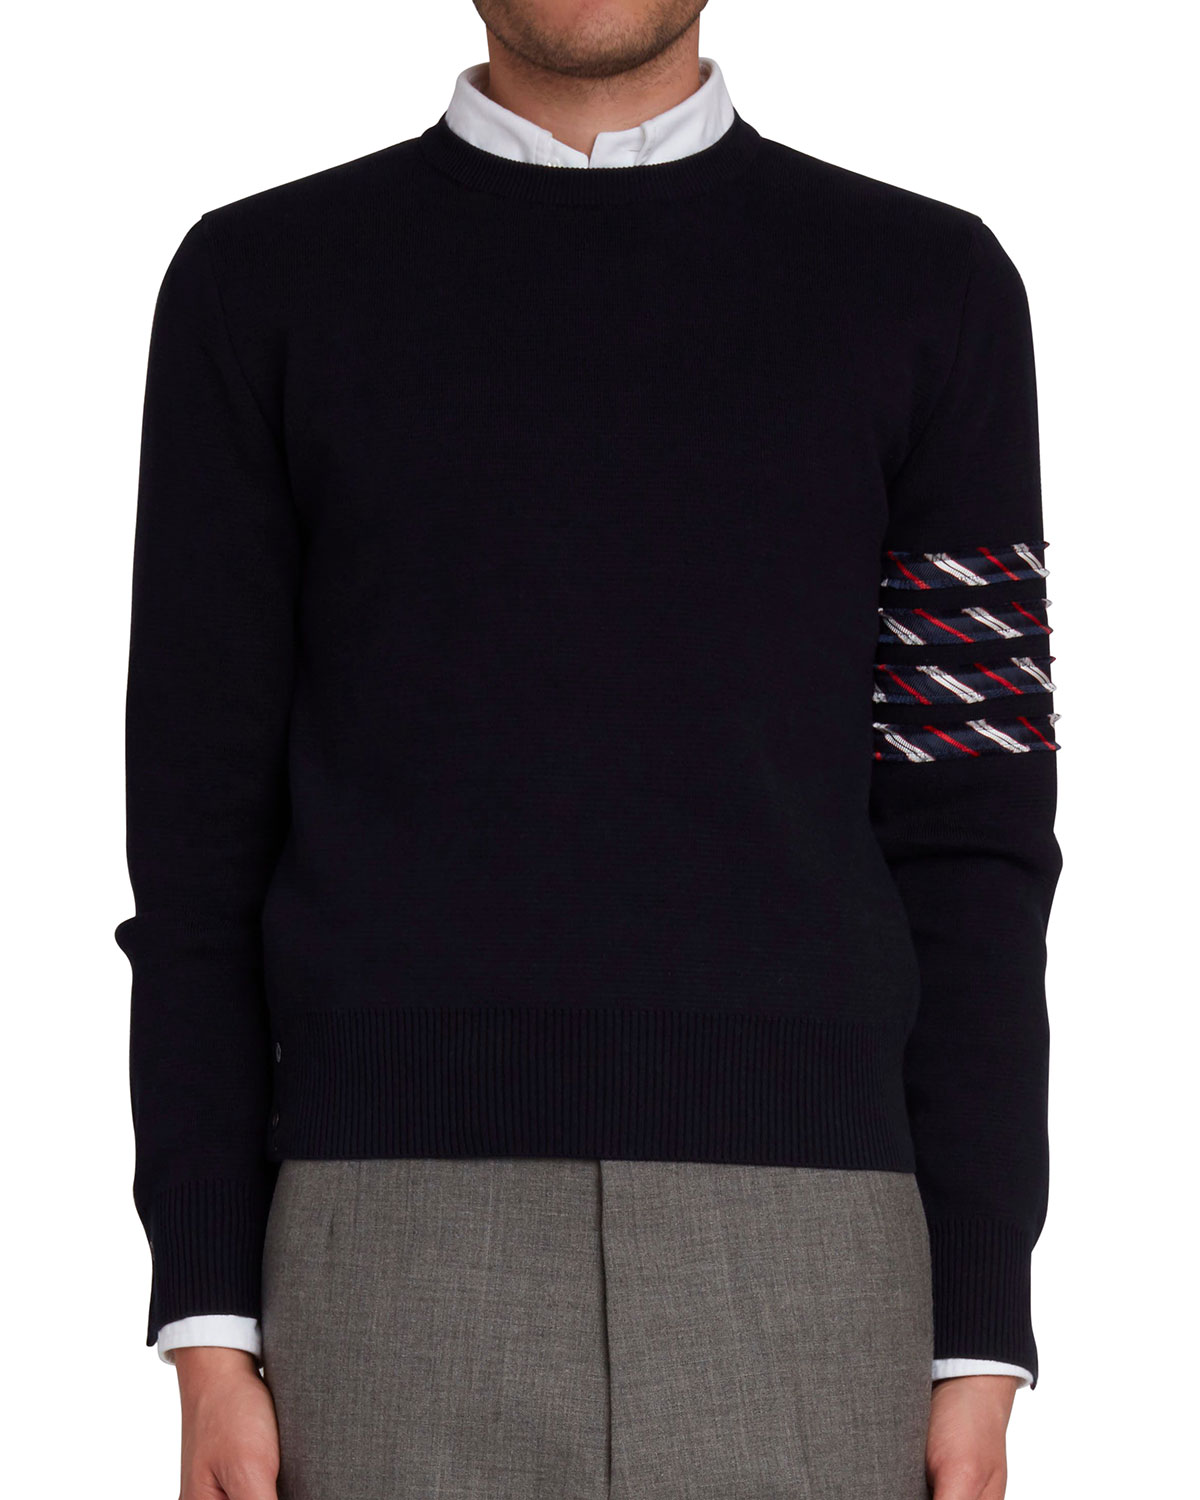 Thom Browne Men's Milano Stitched 4-bar Sweater In Navy